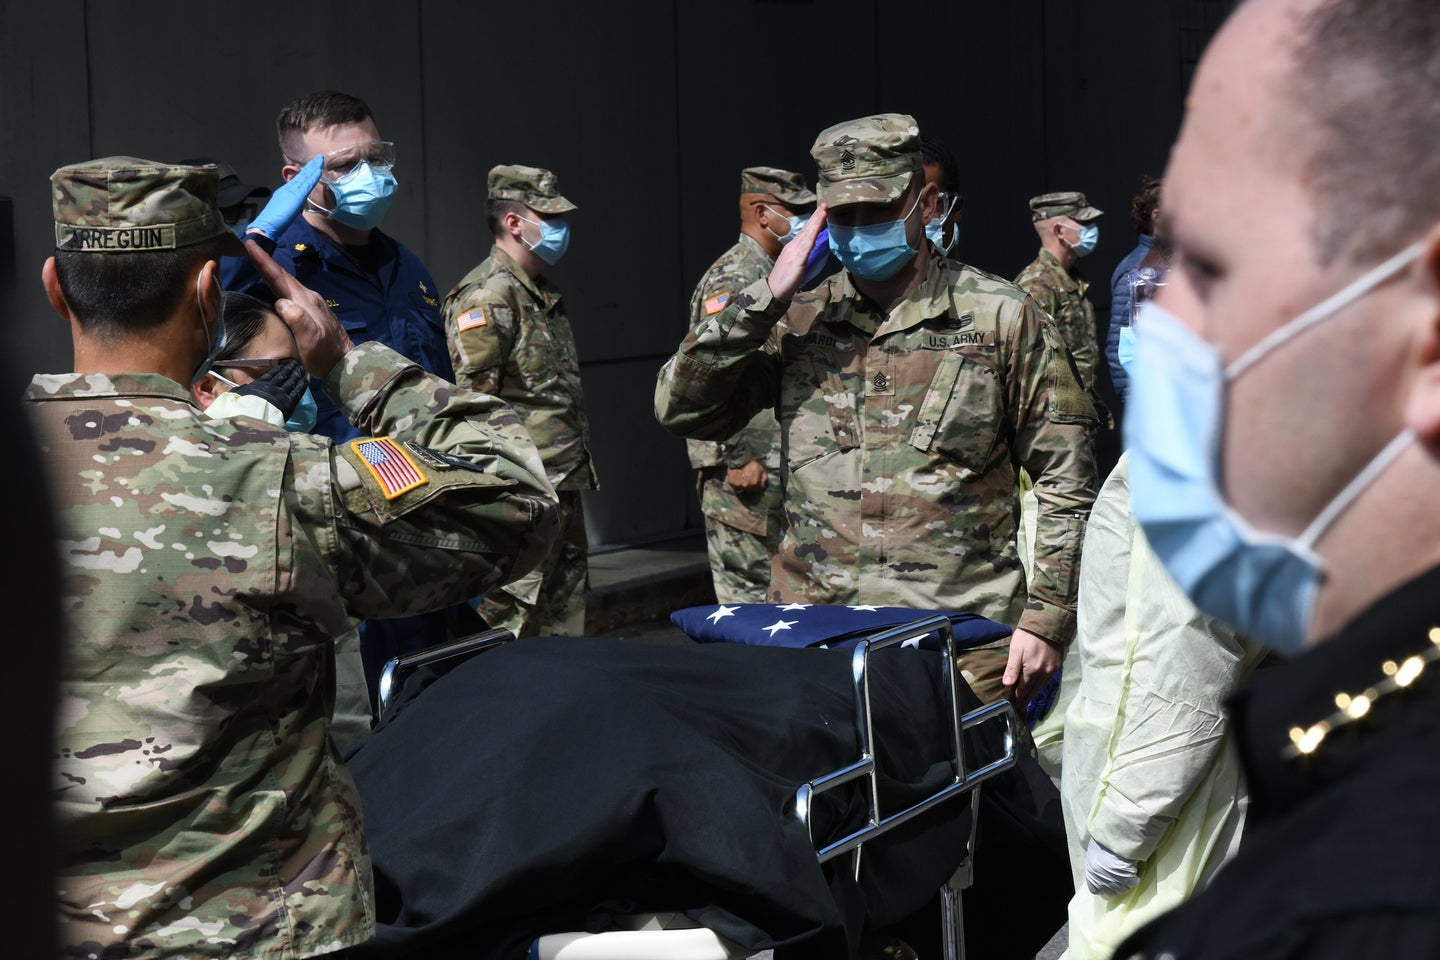 National guard members salute a veteran who died from COVID-19 at the Javits Center field hospital in New York City